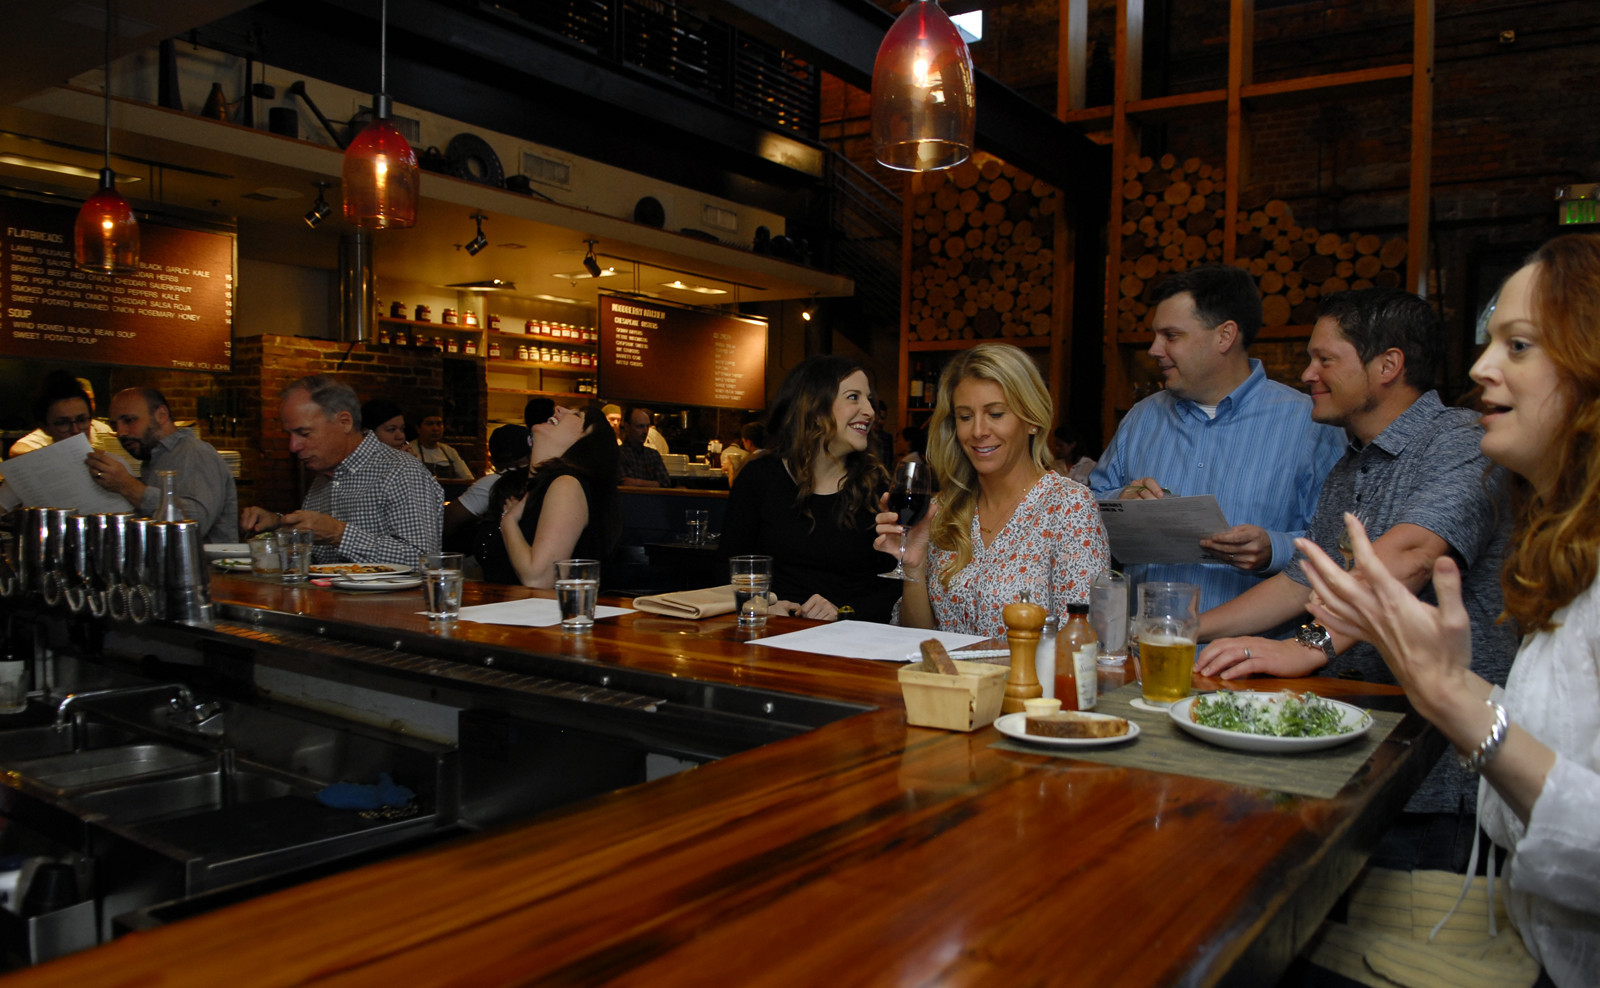 woodberry kitchens bar is worthy of praise too baltimore sun - Woodberry Kitchen